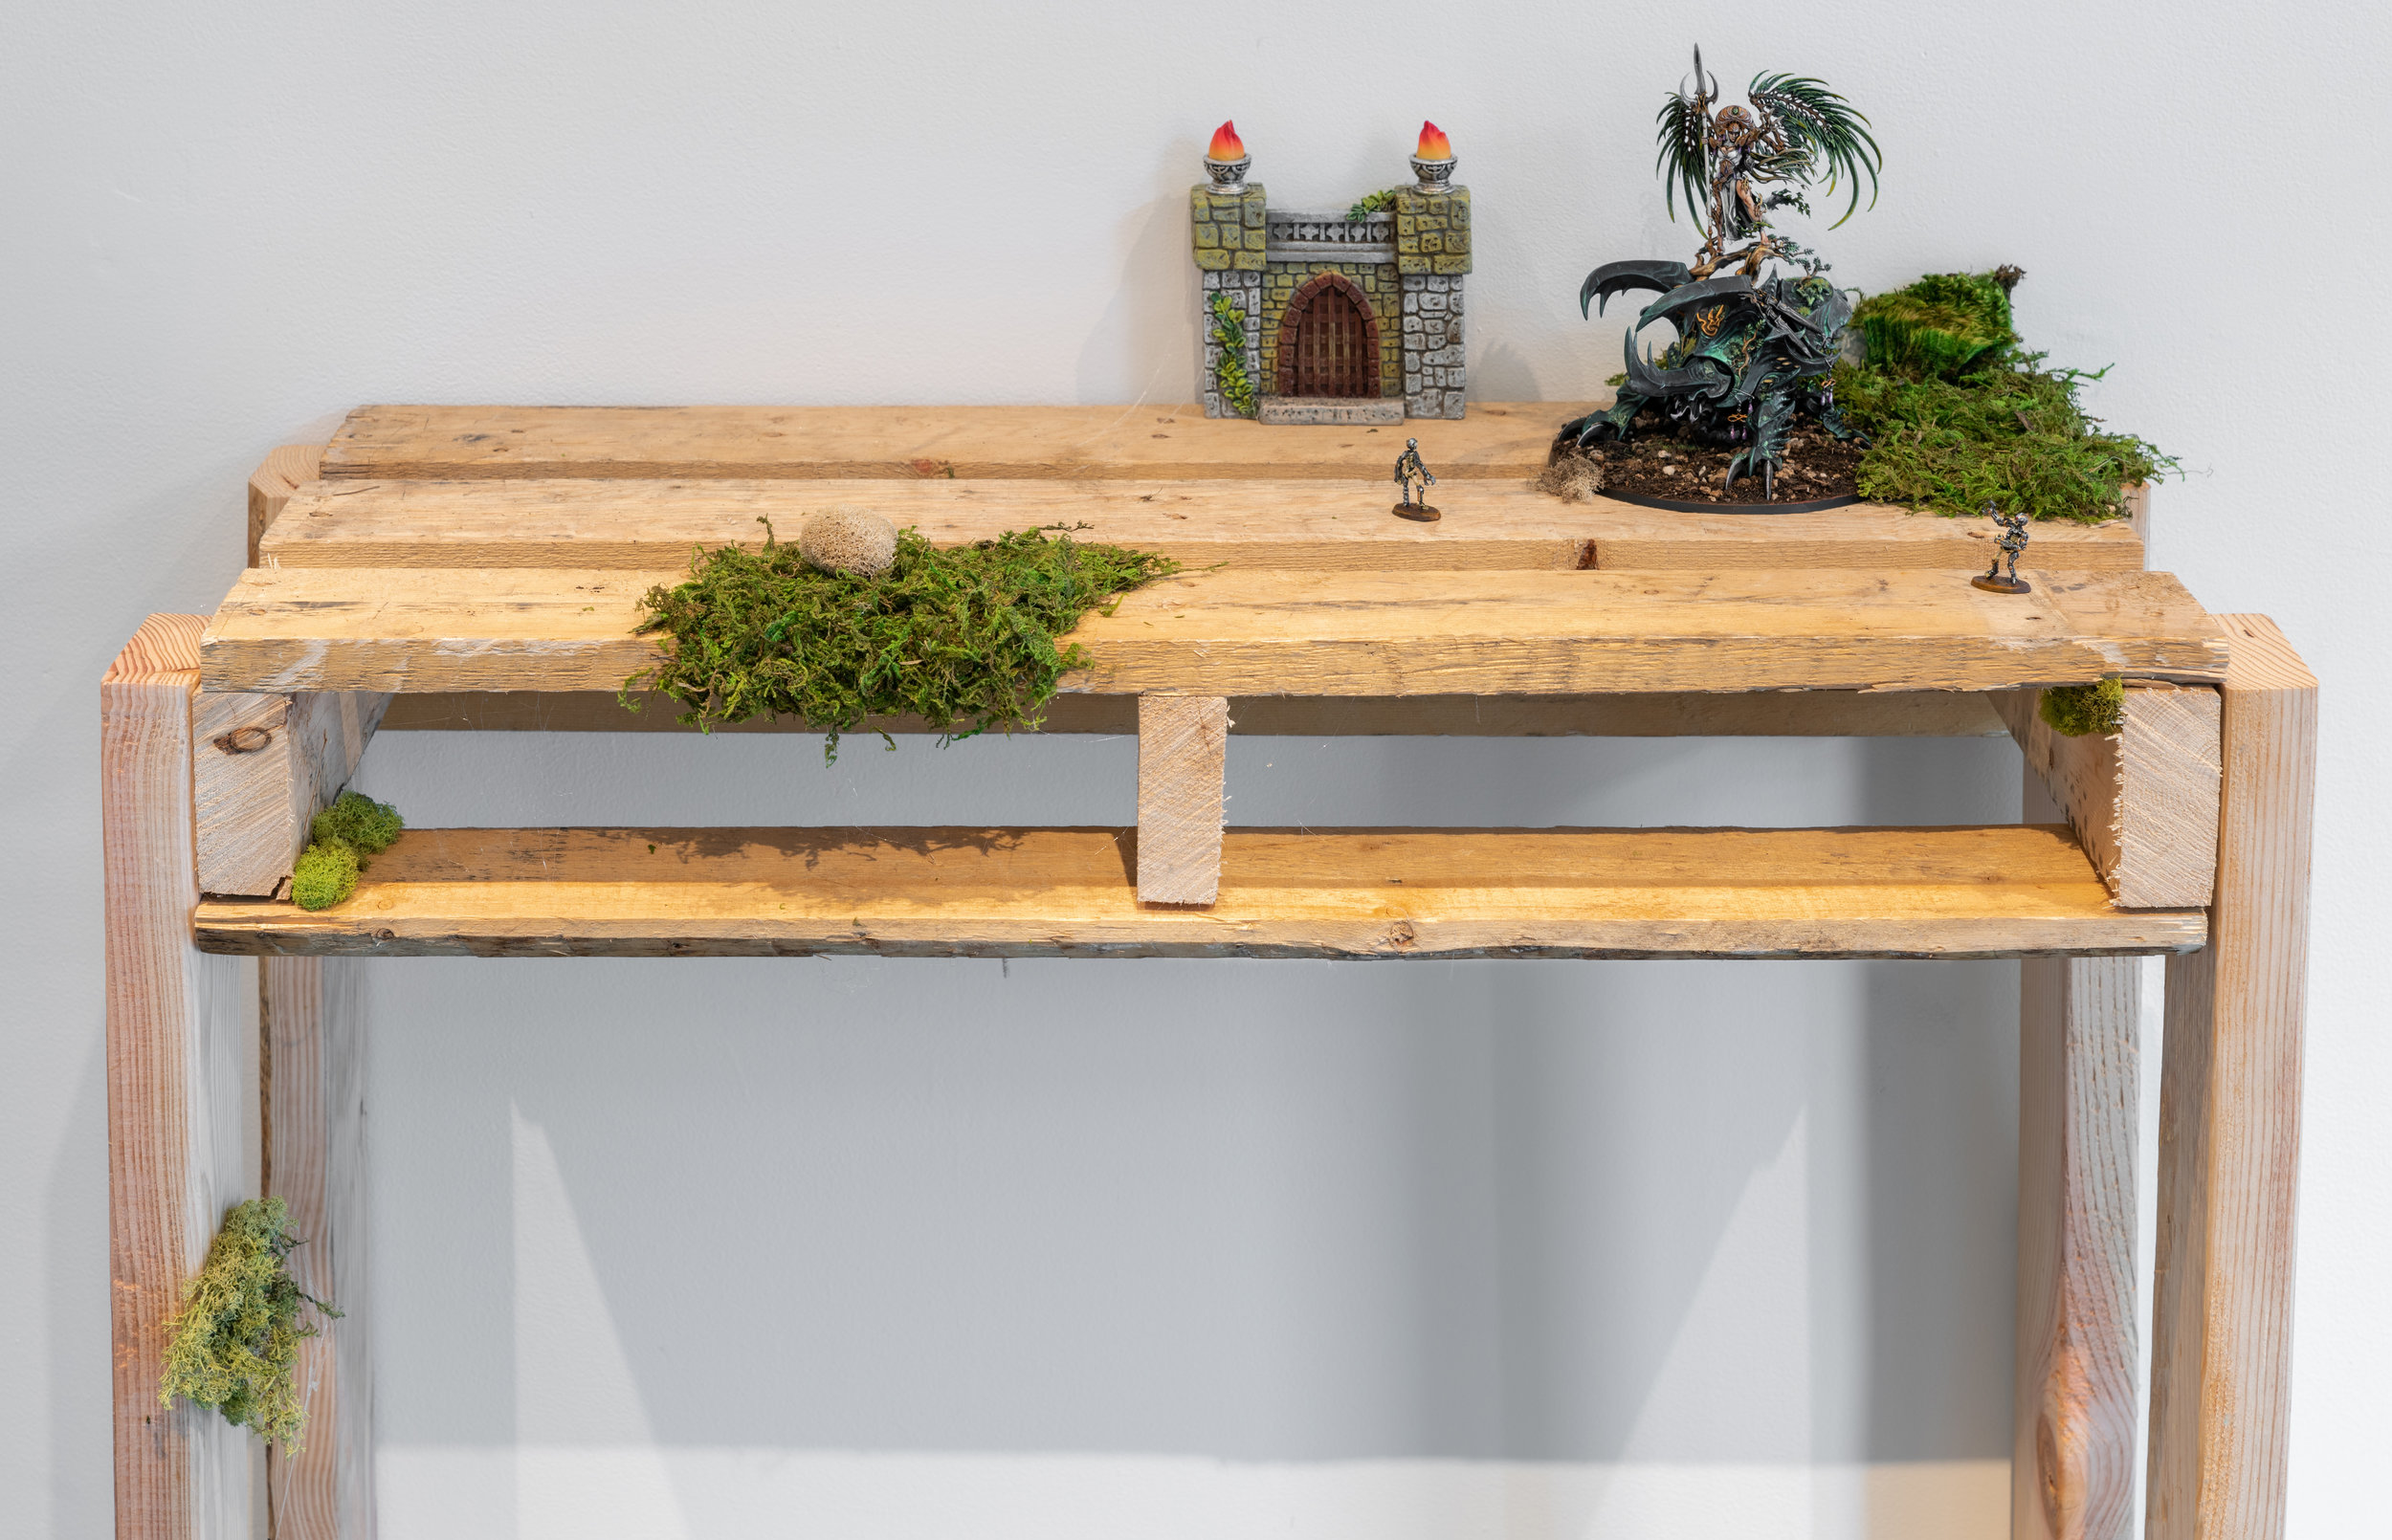 Alarielle The Everqueen , 2018  Hand-painted miniatures (plastic and metal), wood pallet table and various found objects